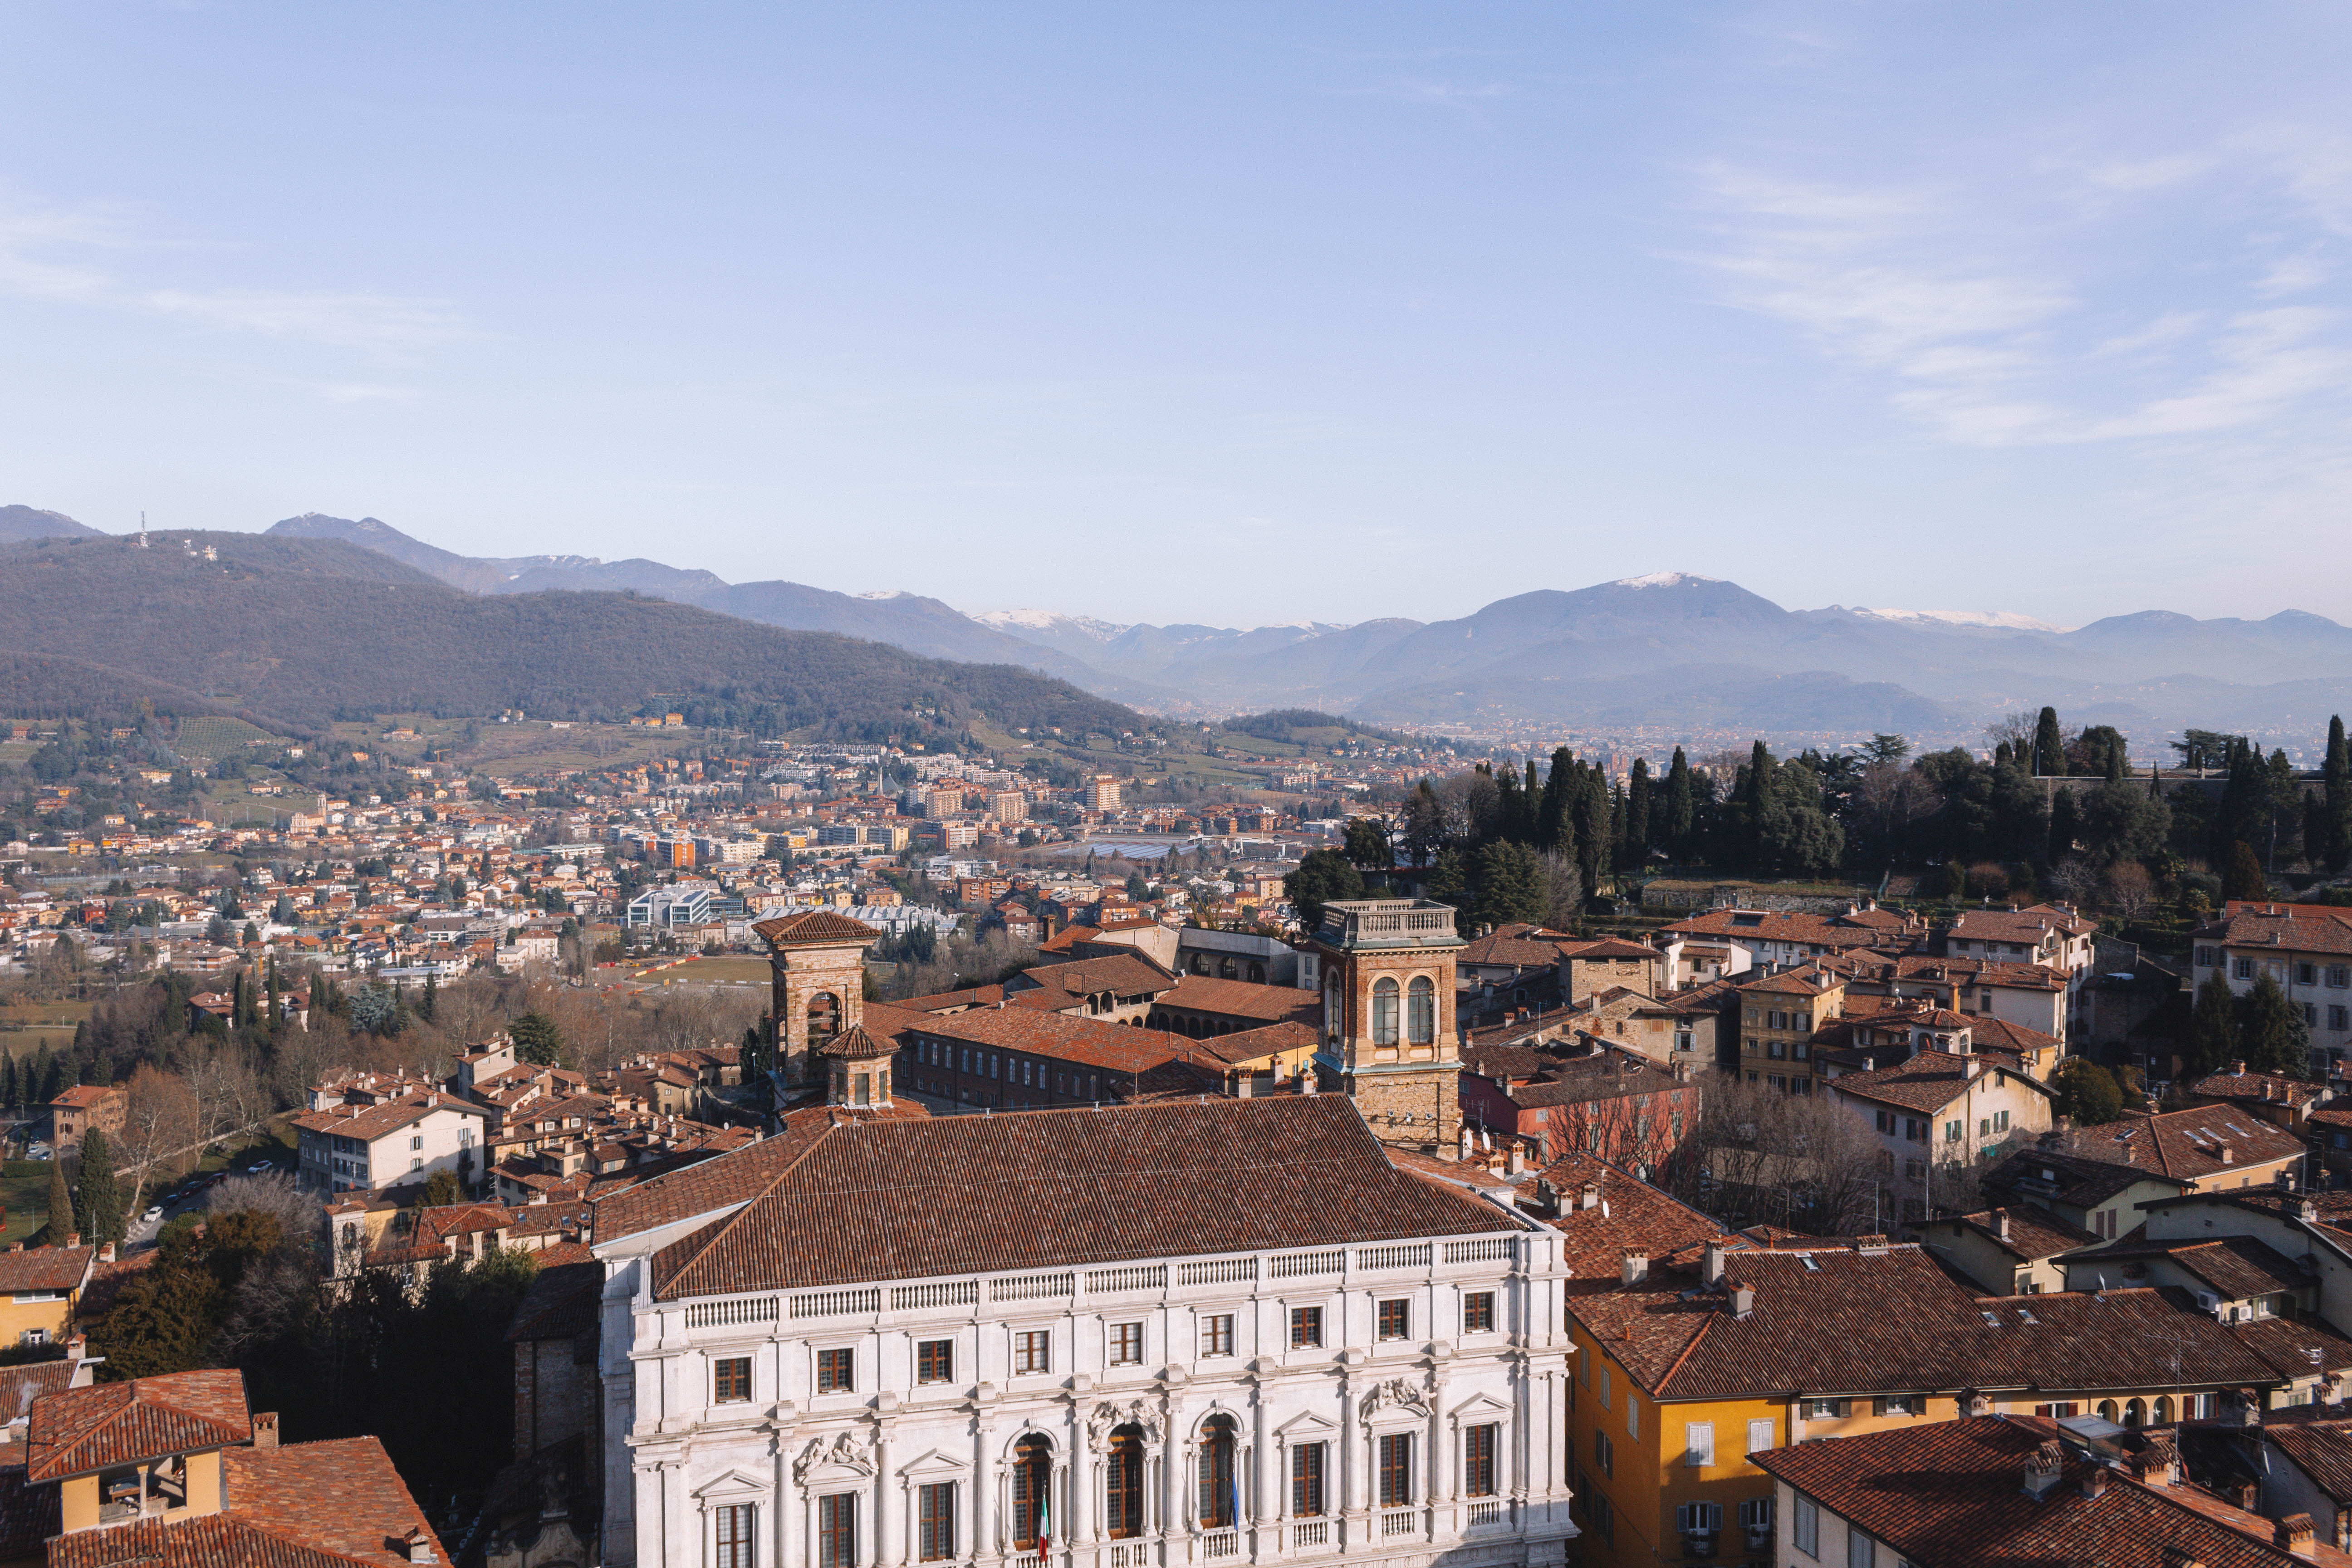 View from the Campanone